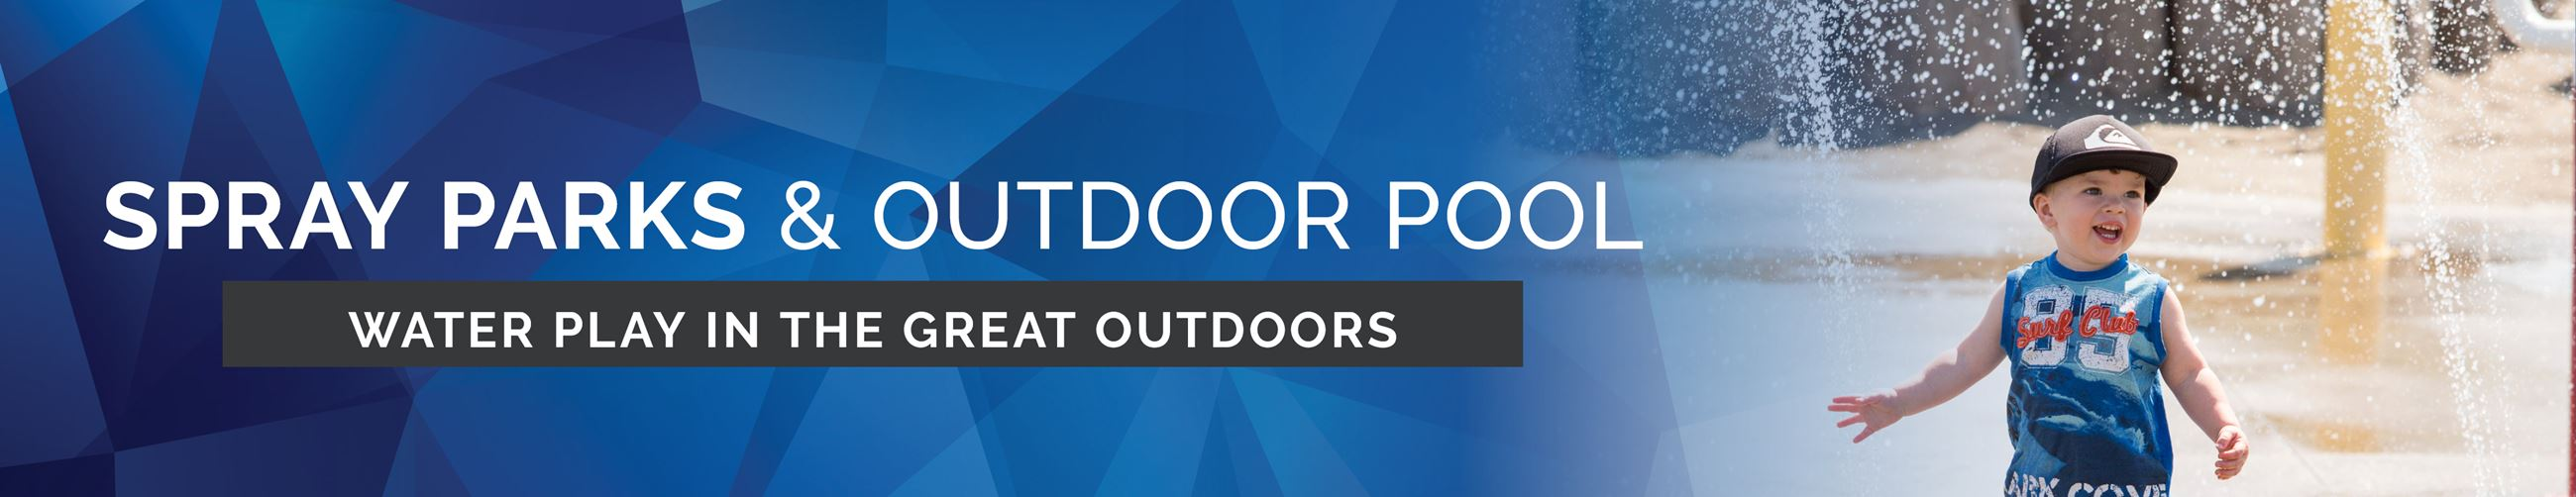 Spray Parks Outdoor Pool Page Banner